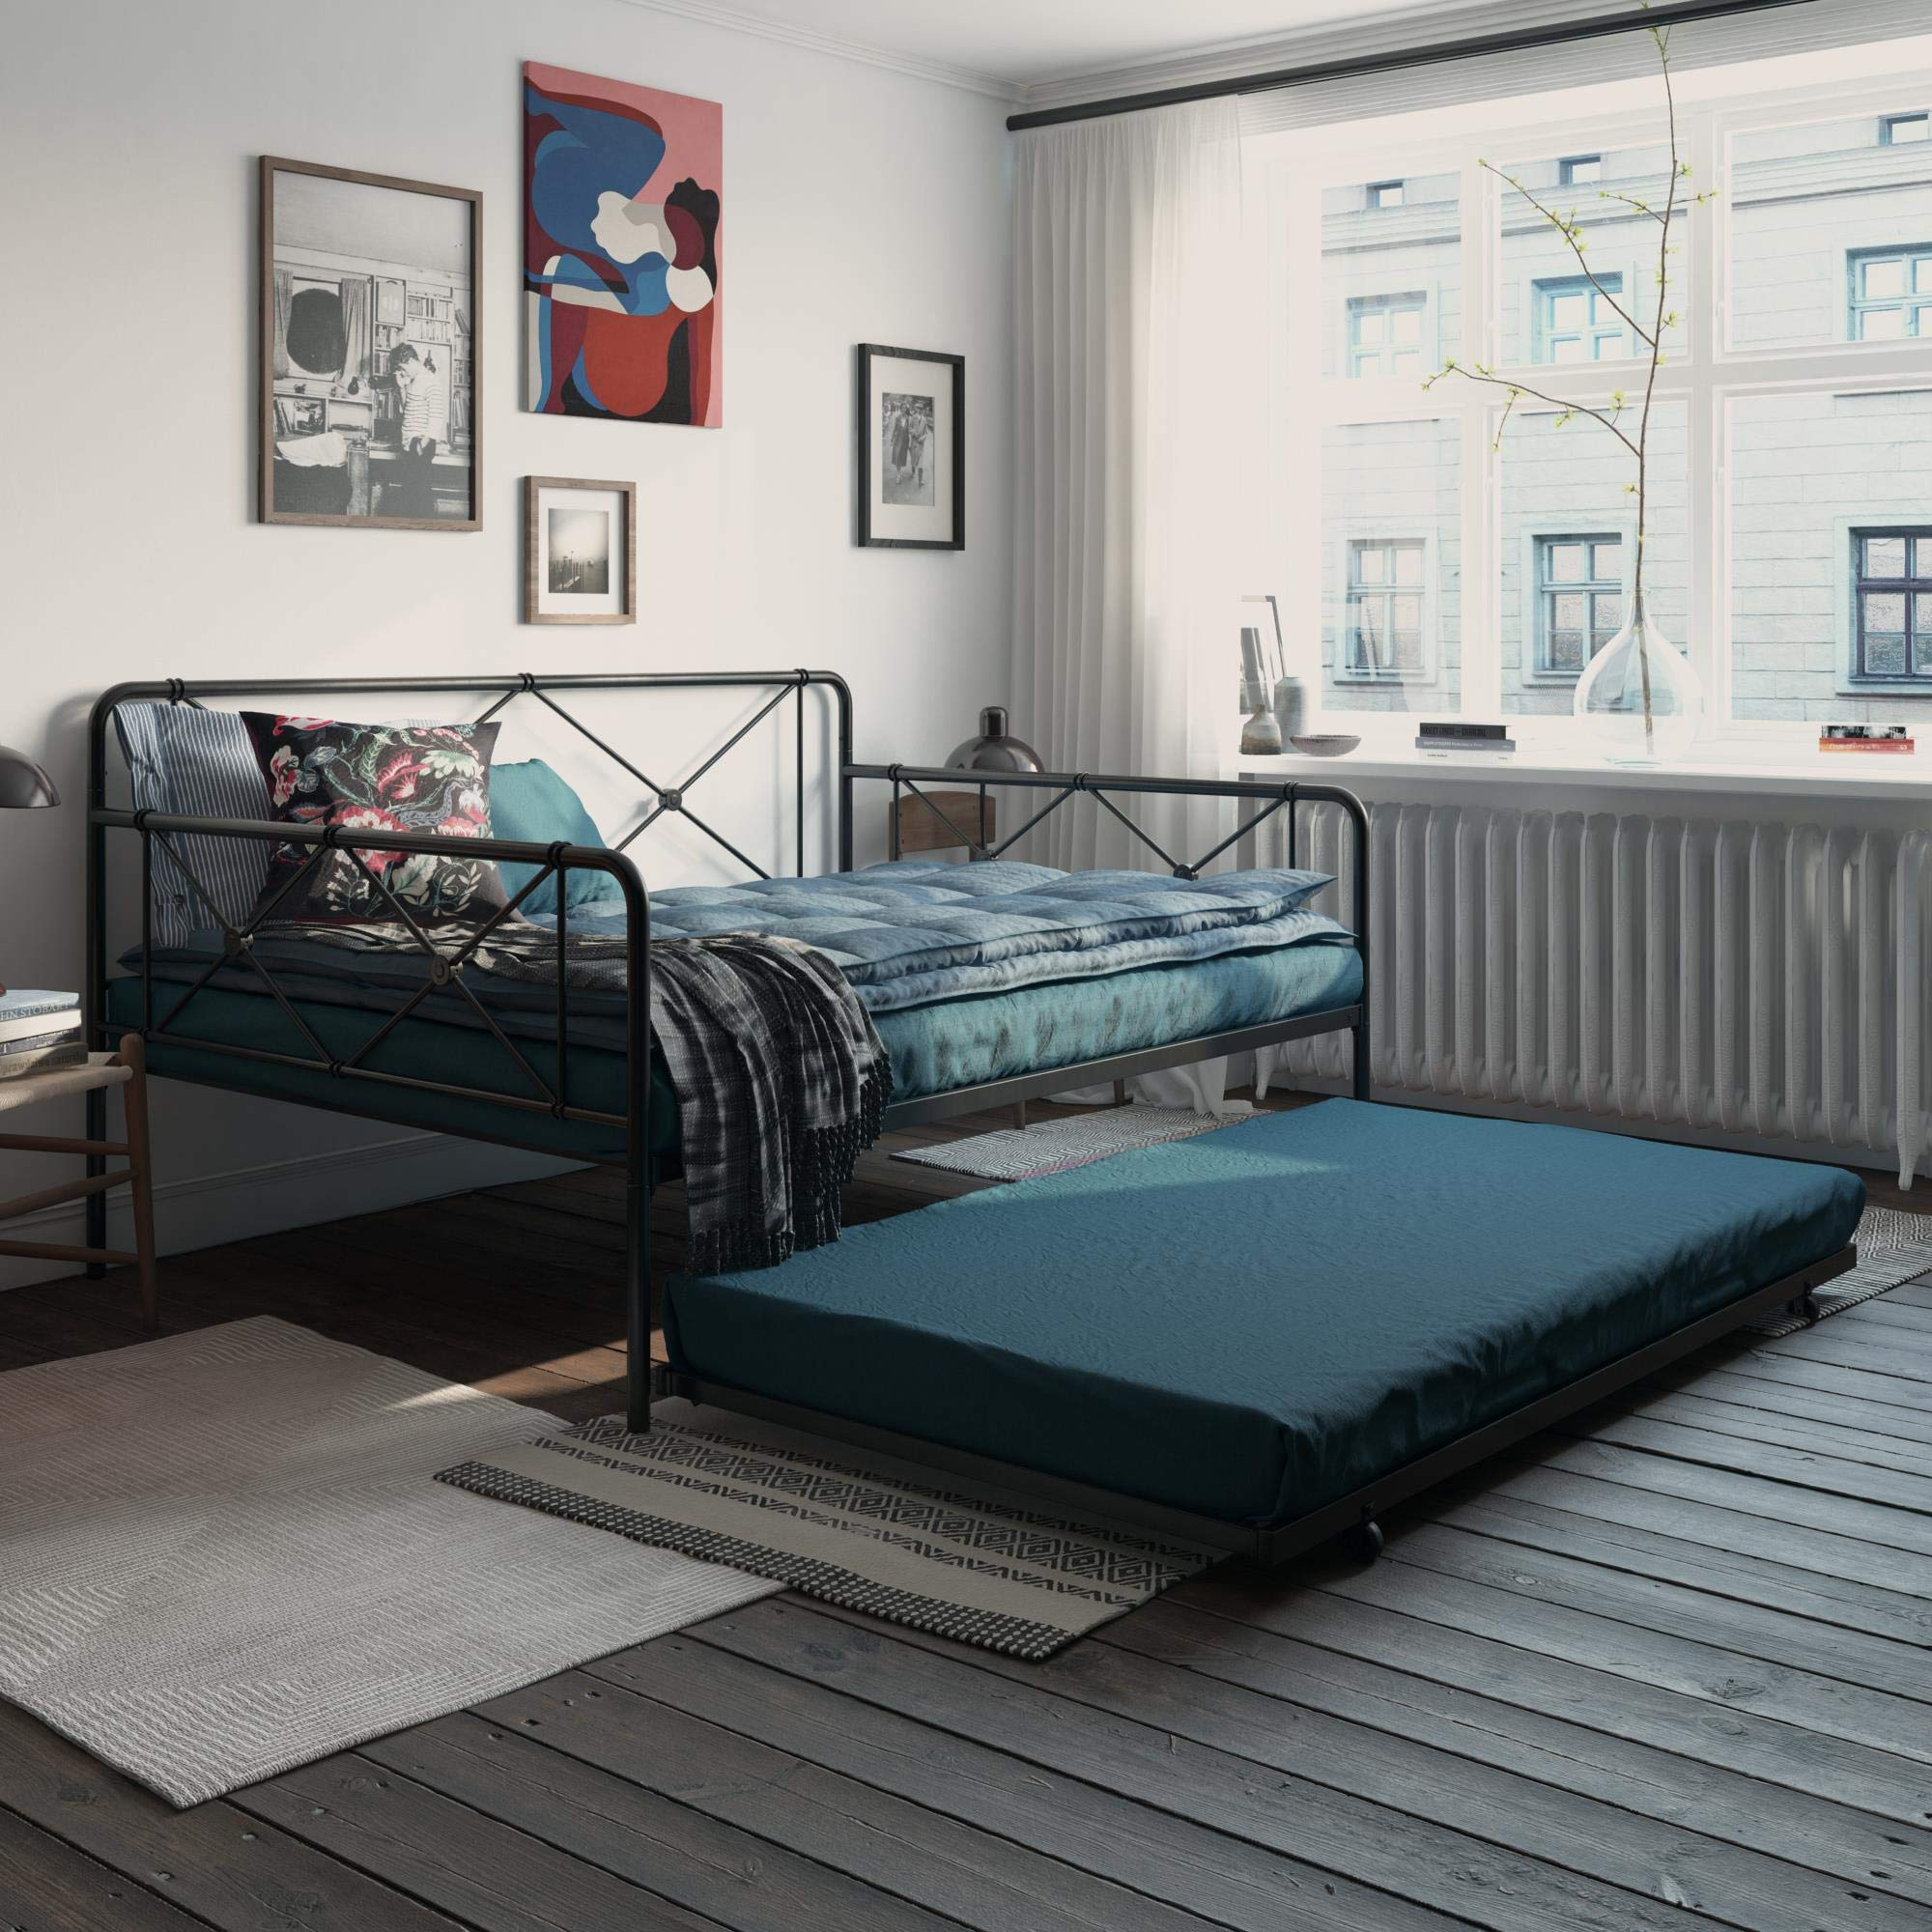 REALROOMS Farmhouse Daybed Trundle Secured